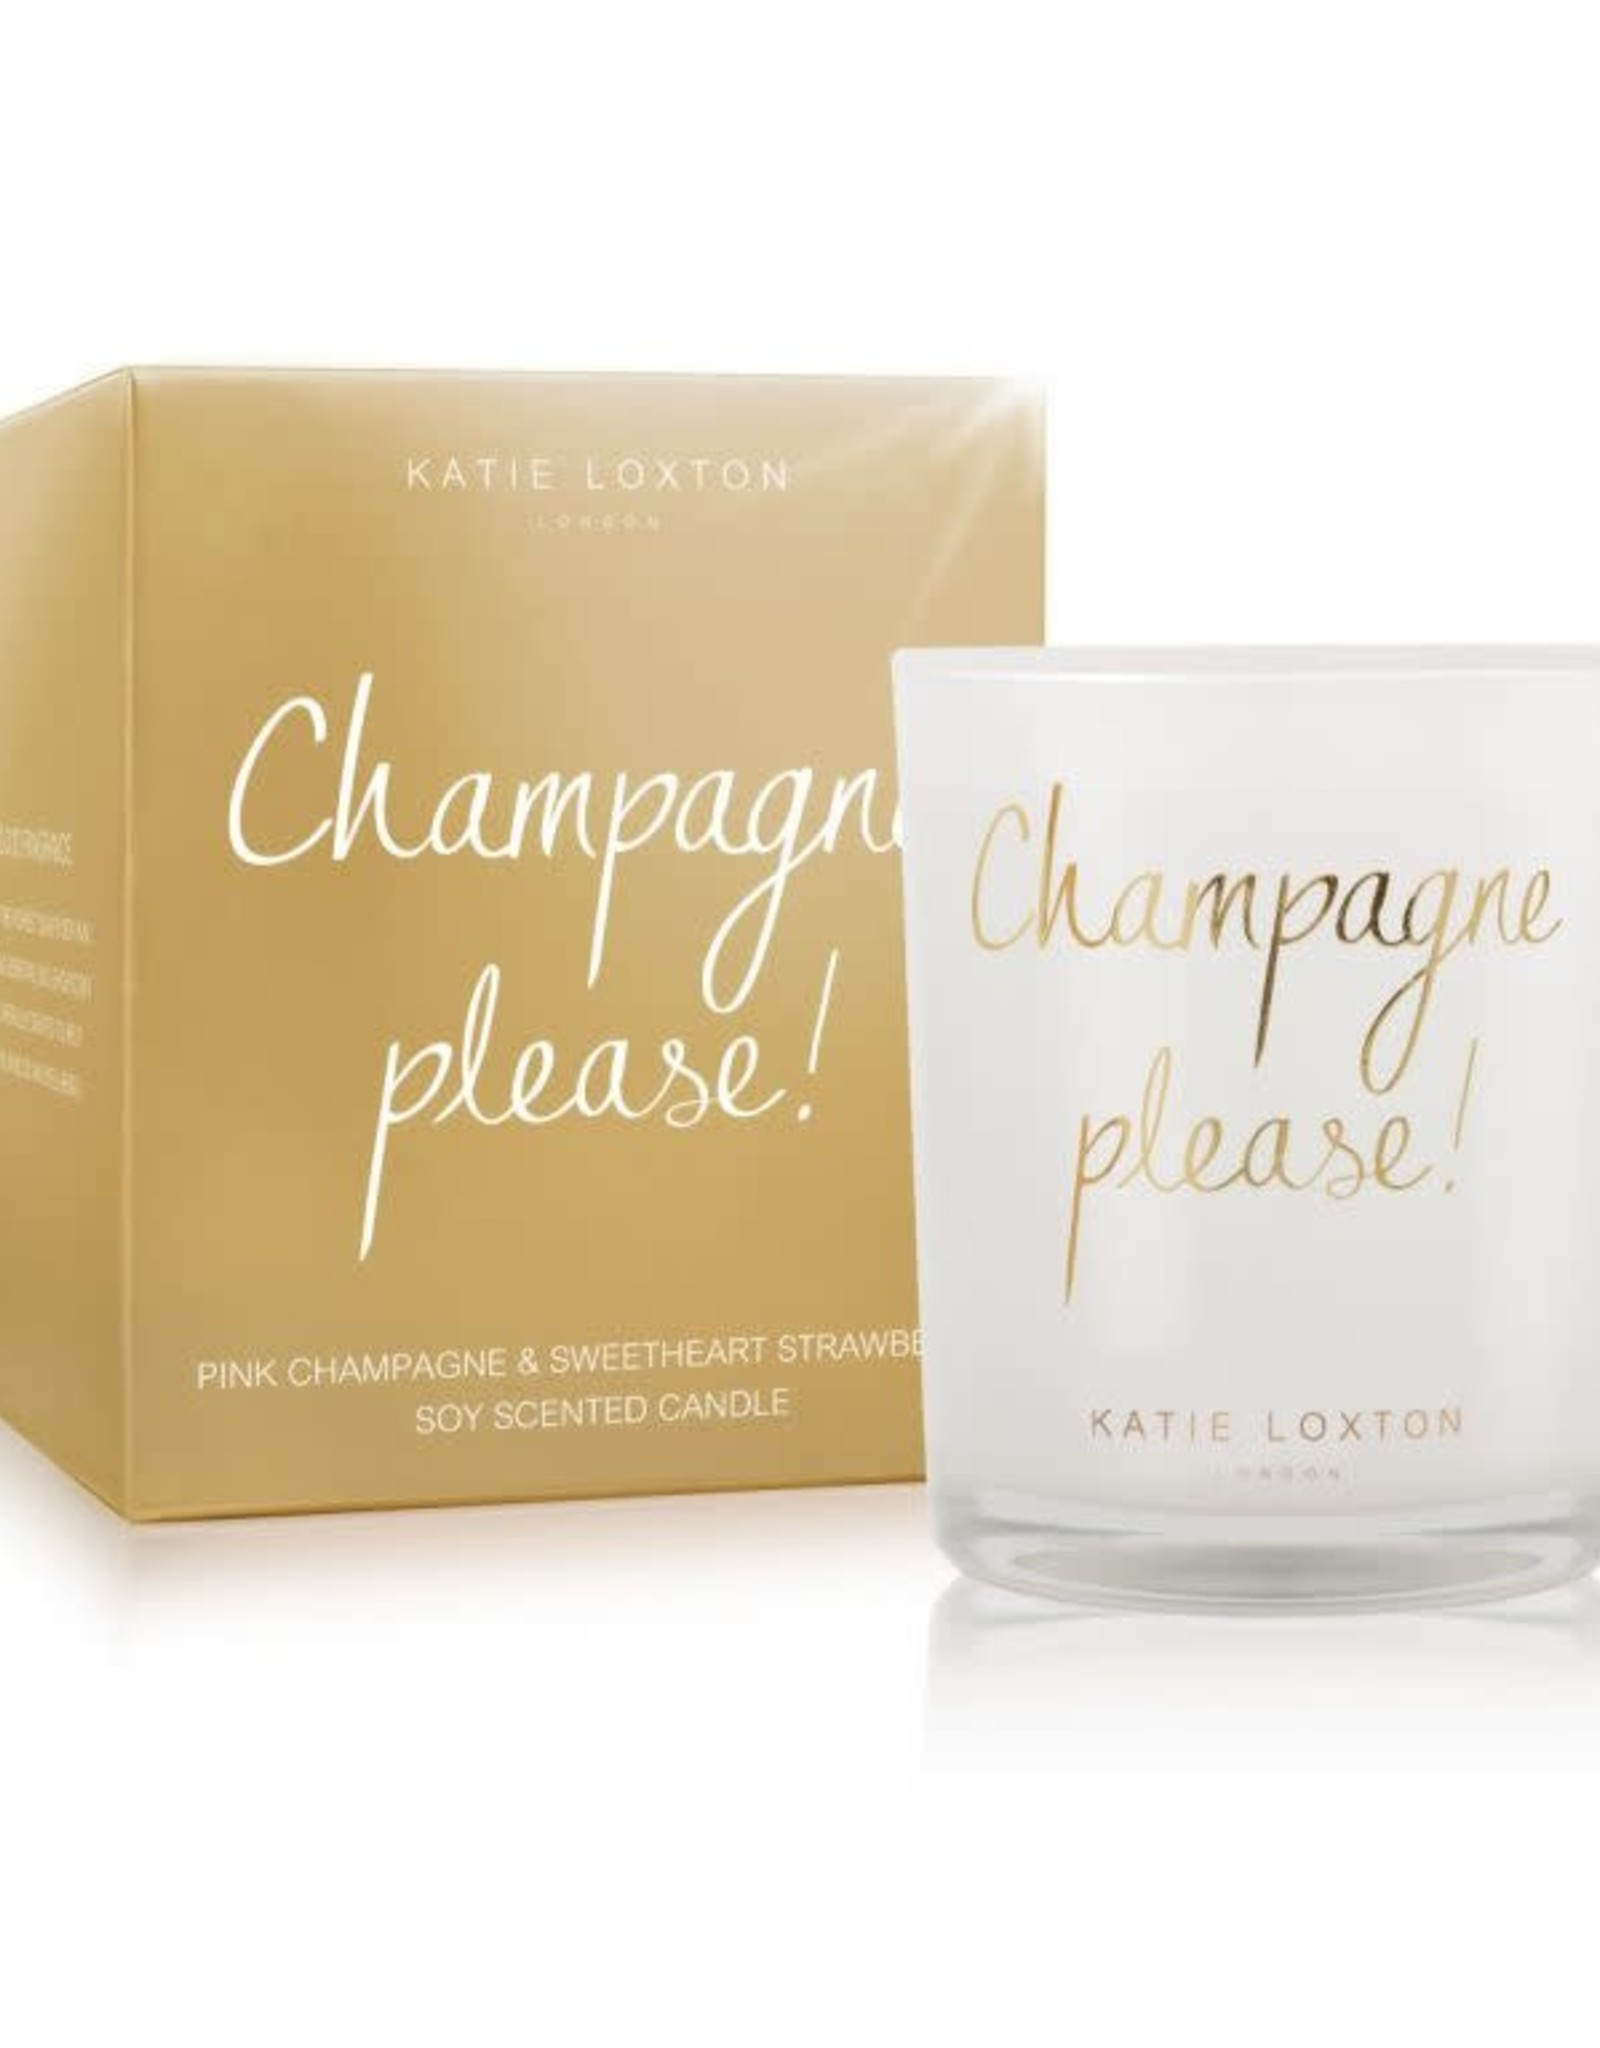 Katie Loxton Metallic Candle-Champagne Please Pink Champagne and Strawberry